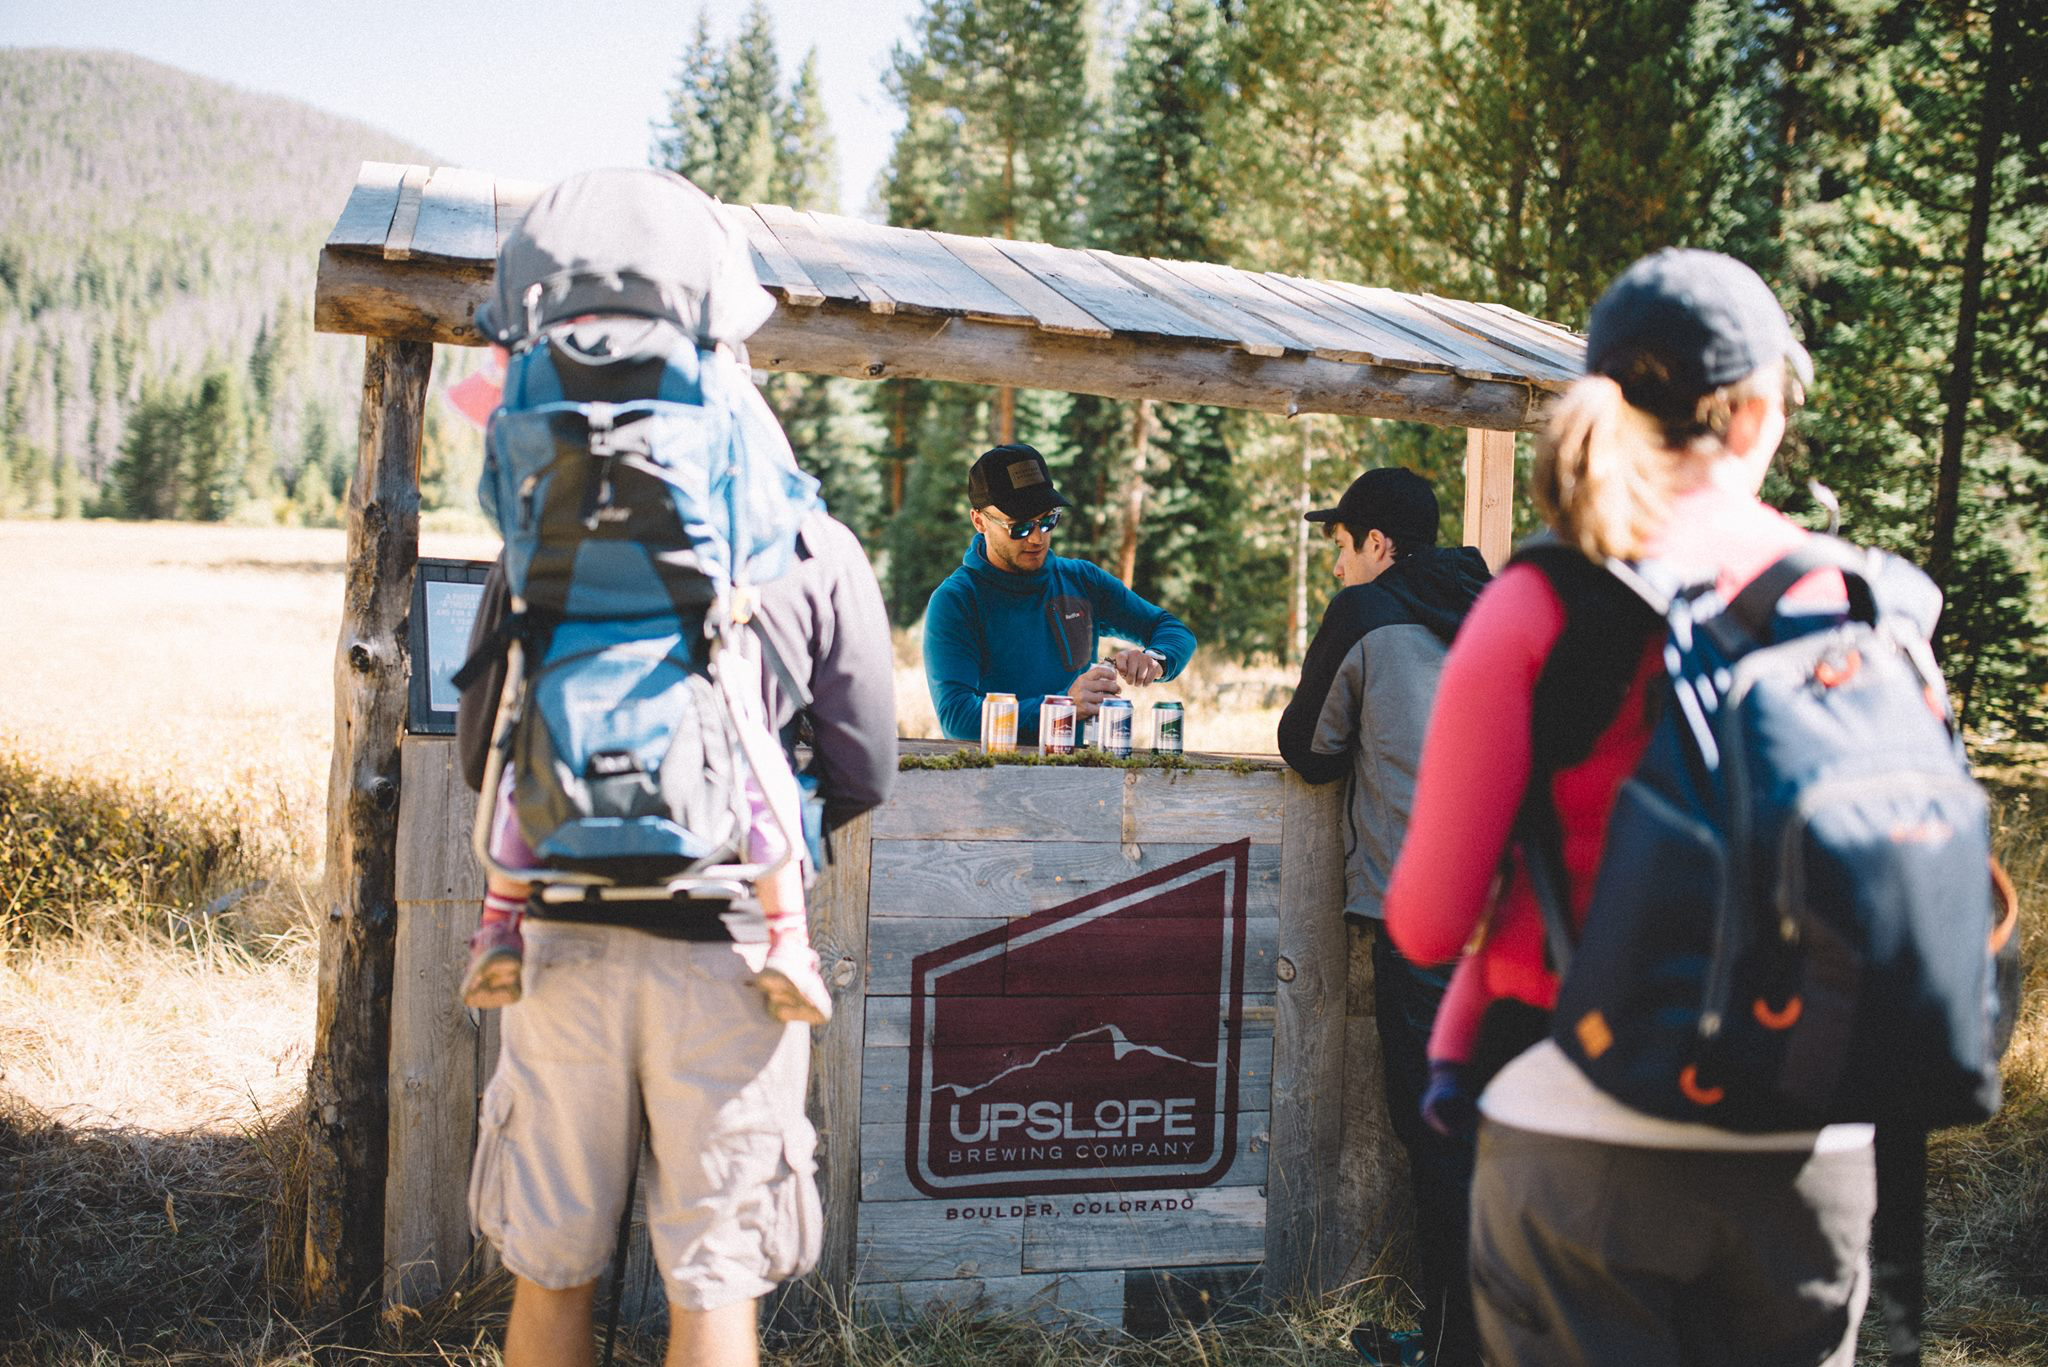 Coloradans Can Now Hike to a Tap Room in the Woods